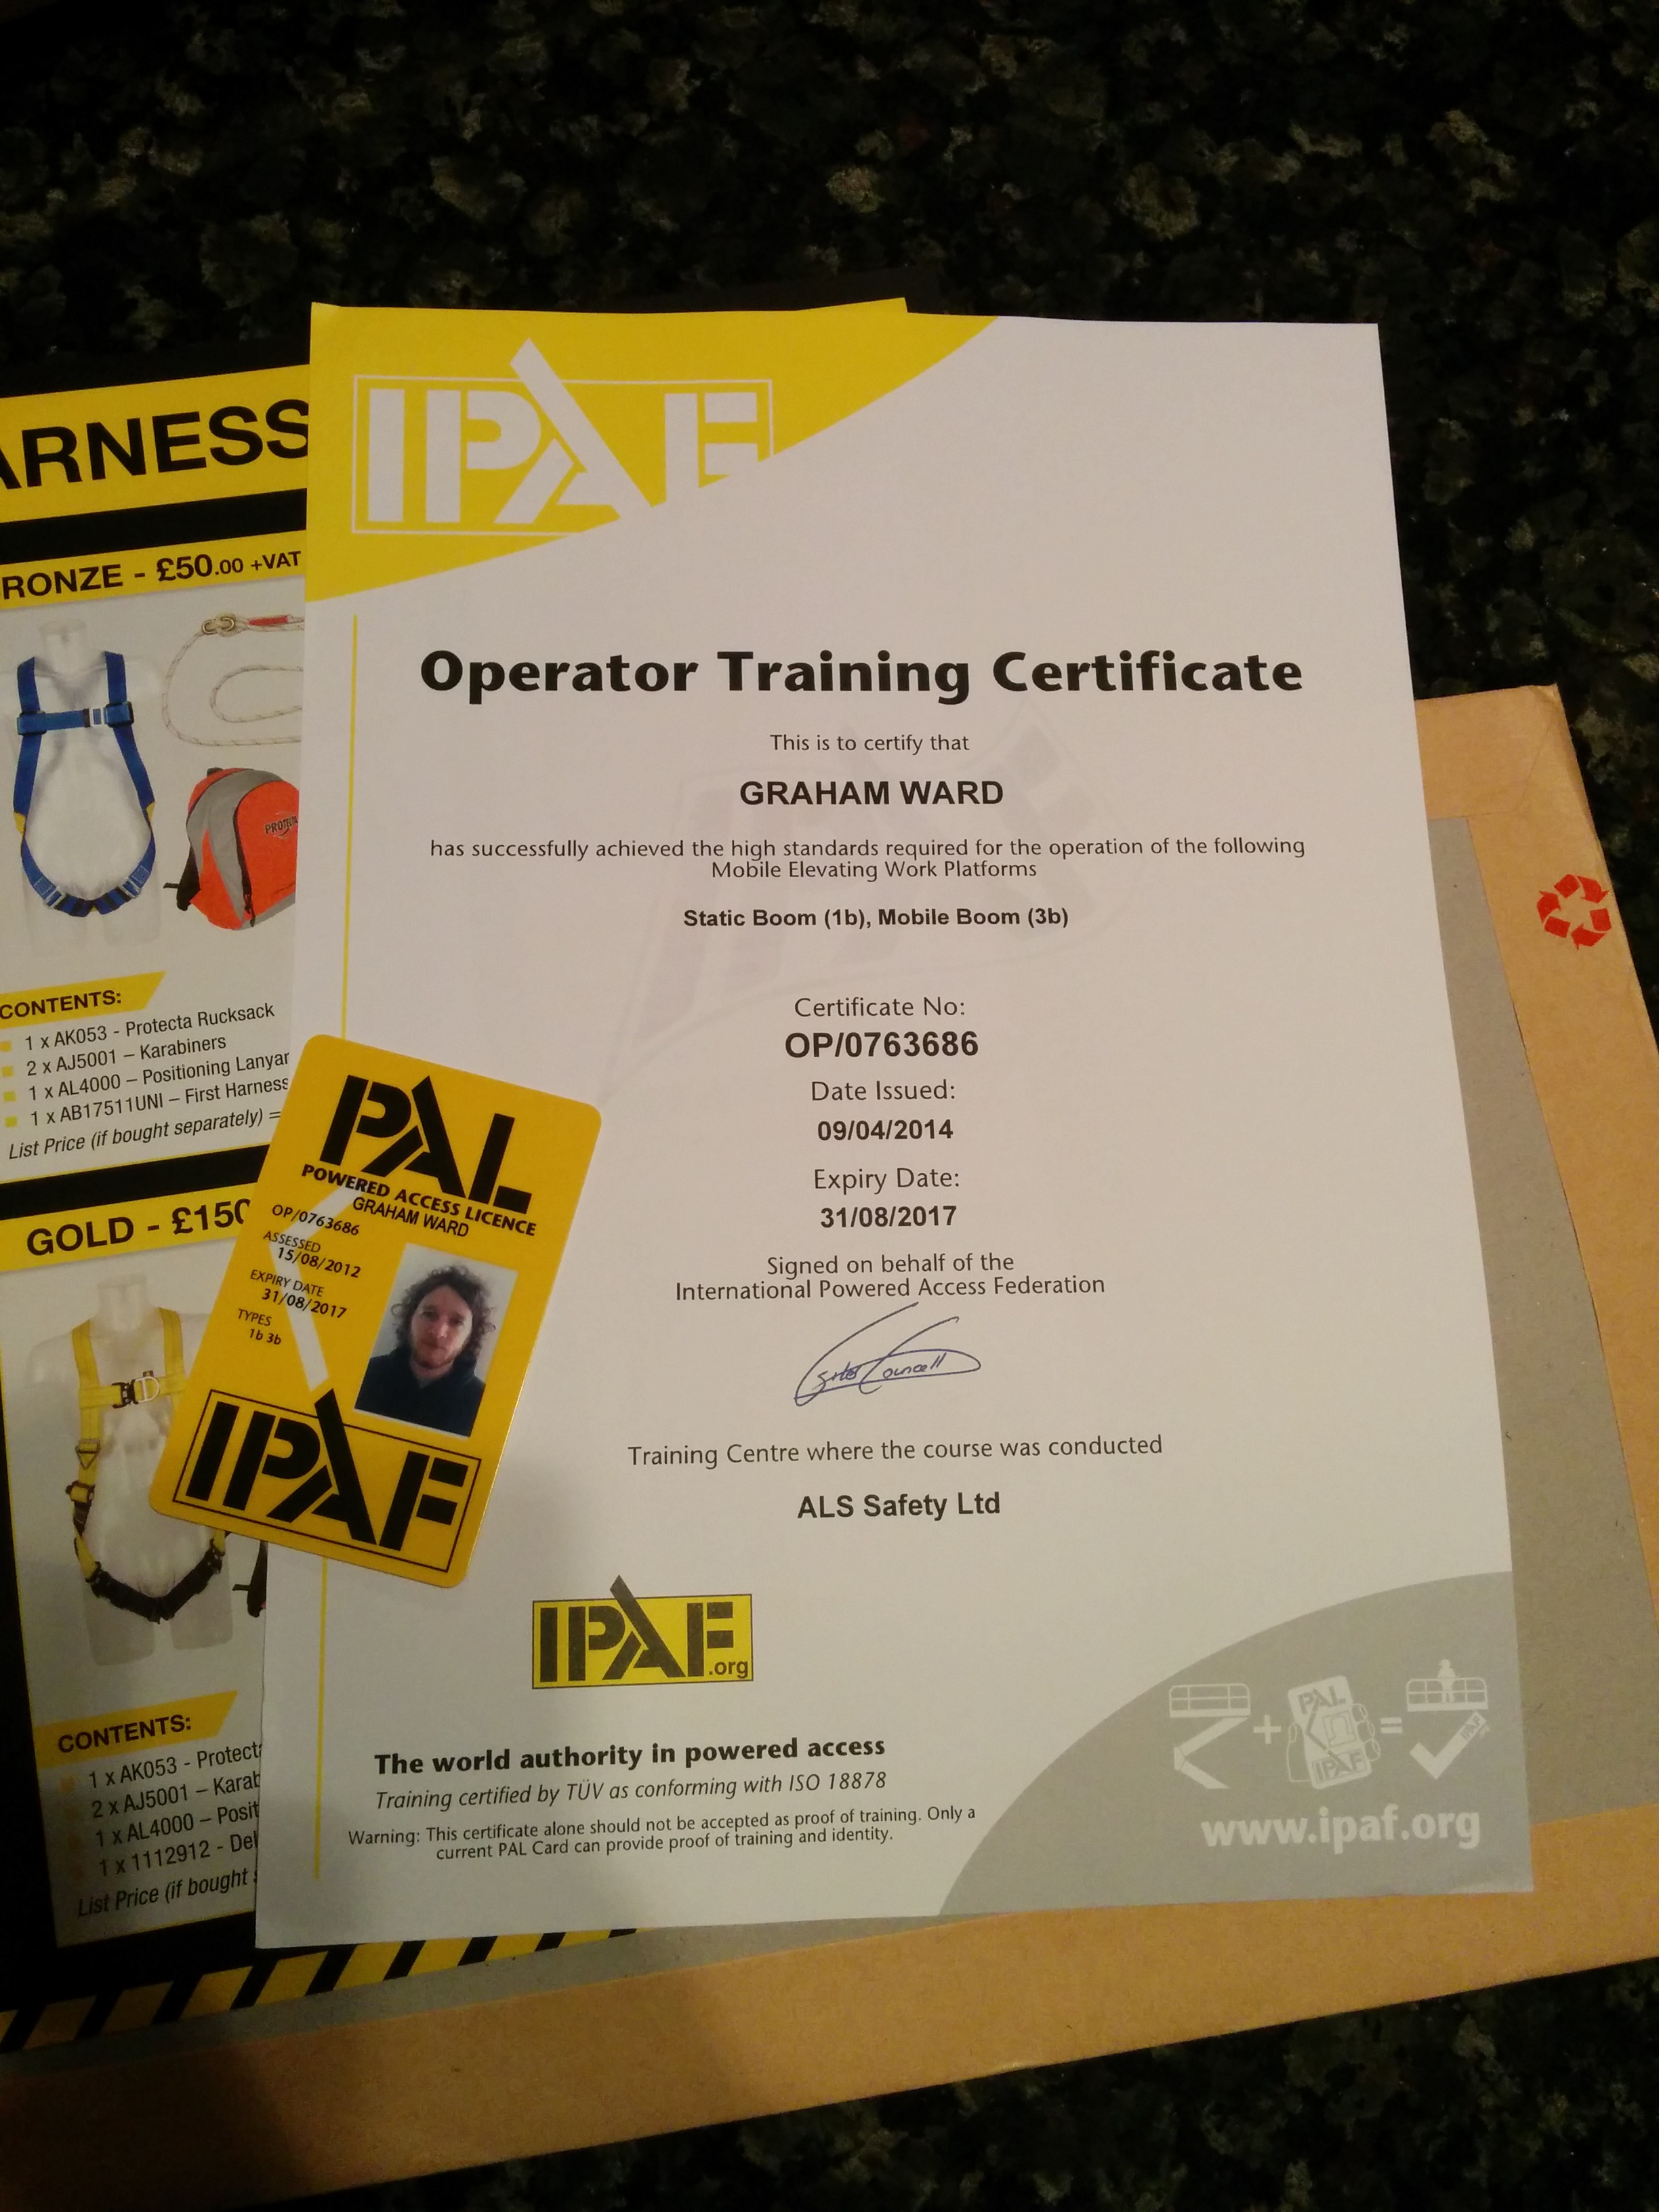 Image of new IPAF card and IPAF certificate